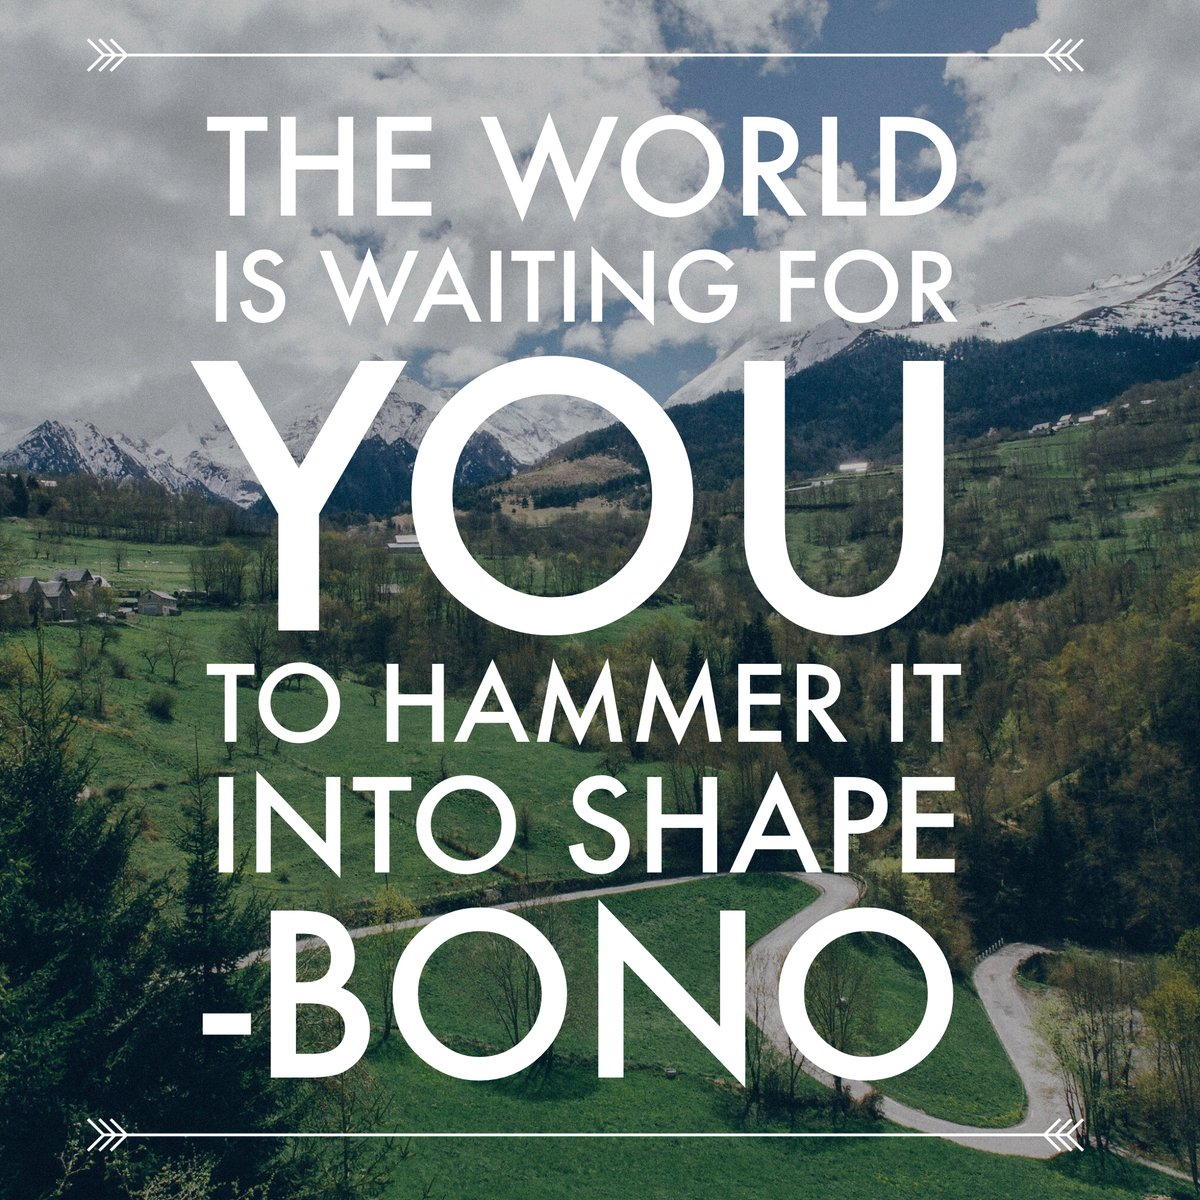 The world is waiting for you to hammer it into shape. - Bono